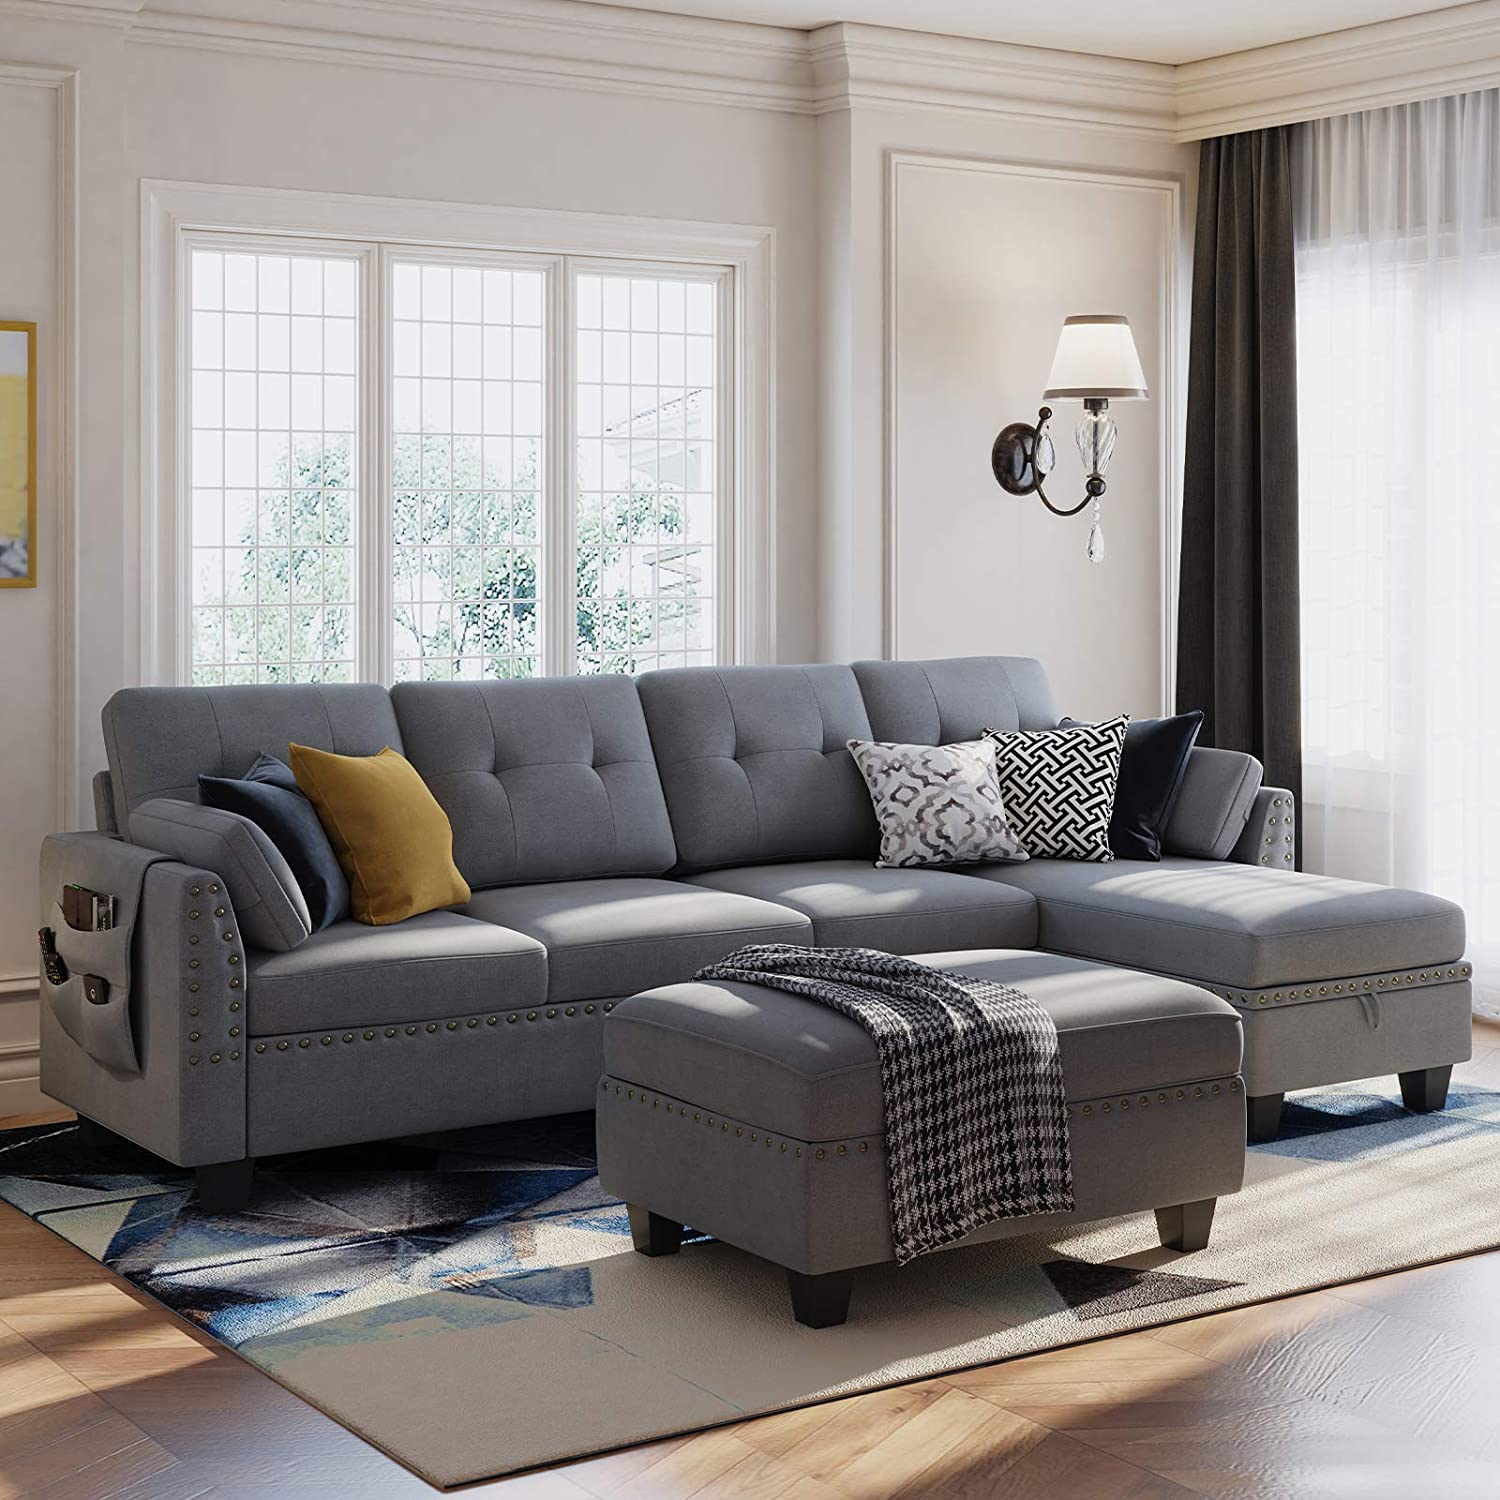 Honbay Reversible Sectional Sofa, Grey Couch Living Room